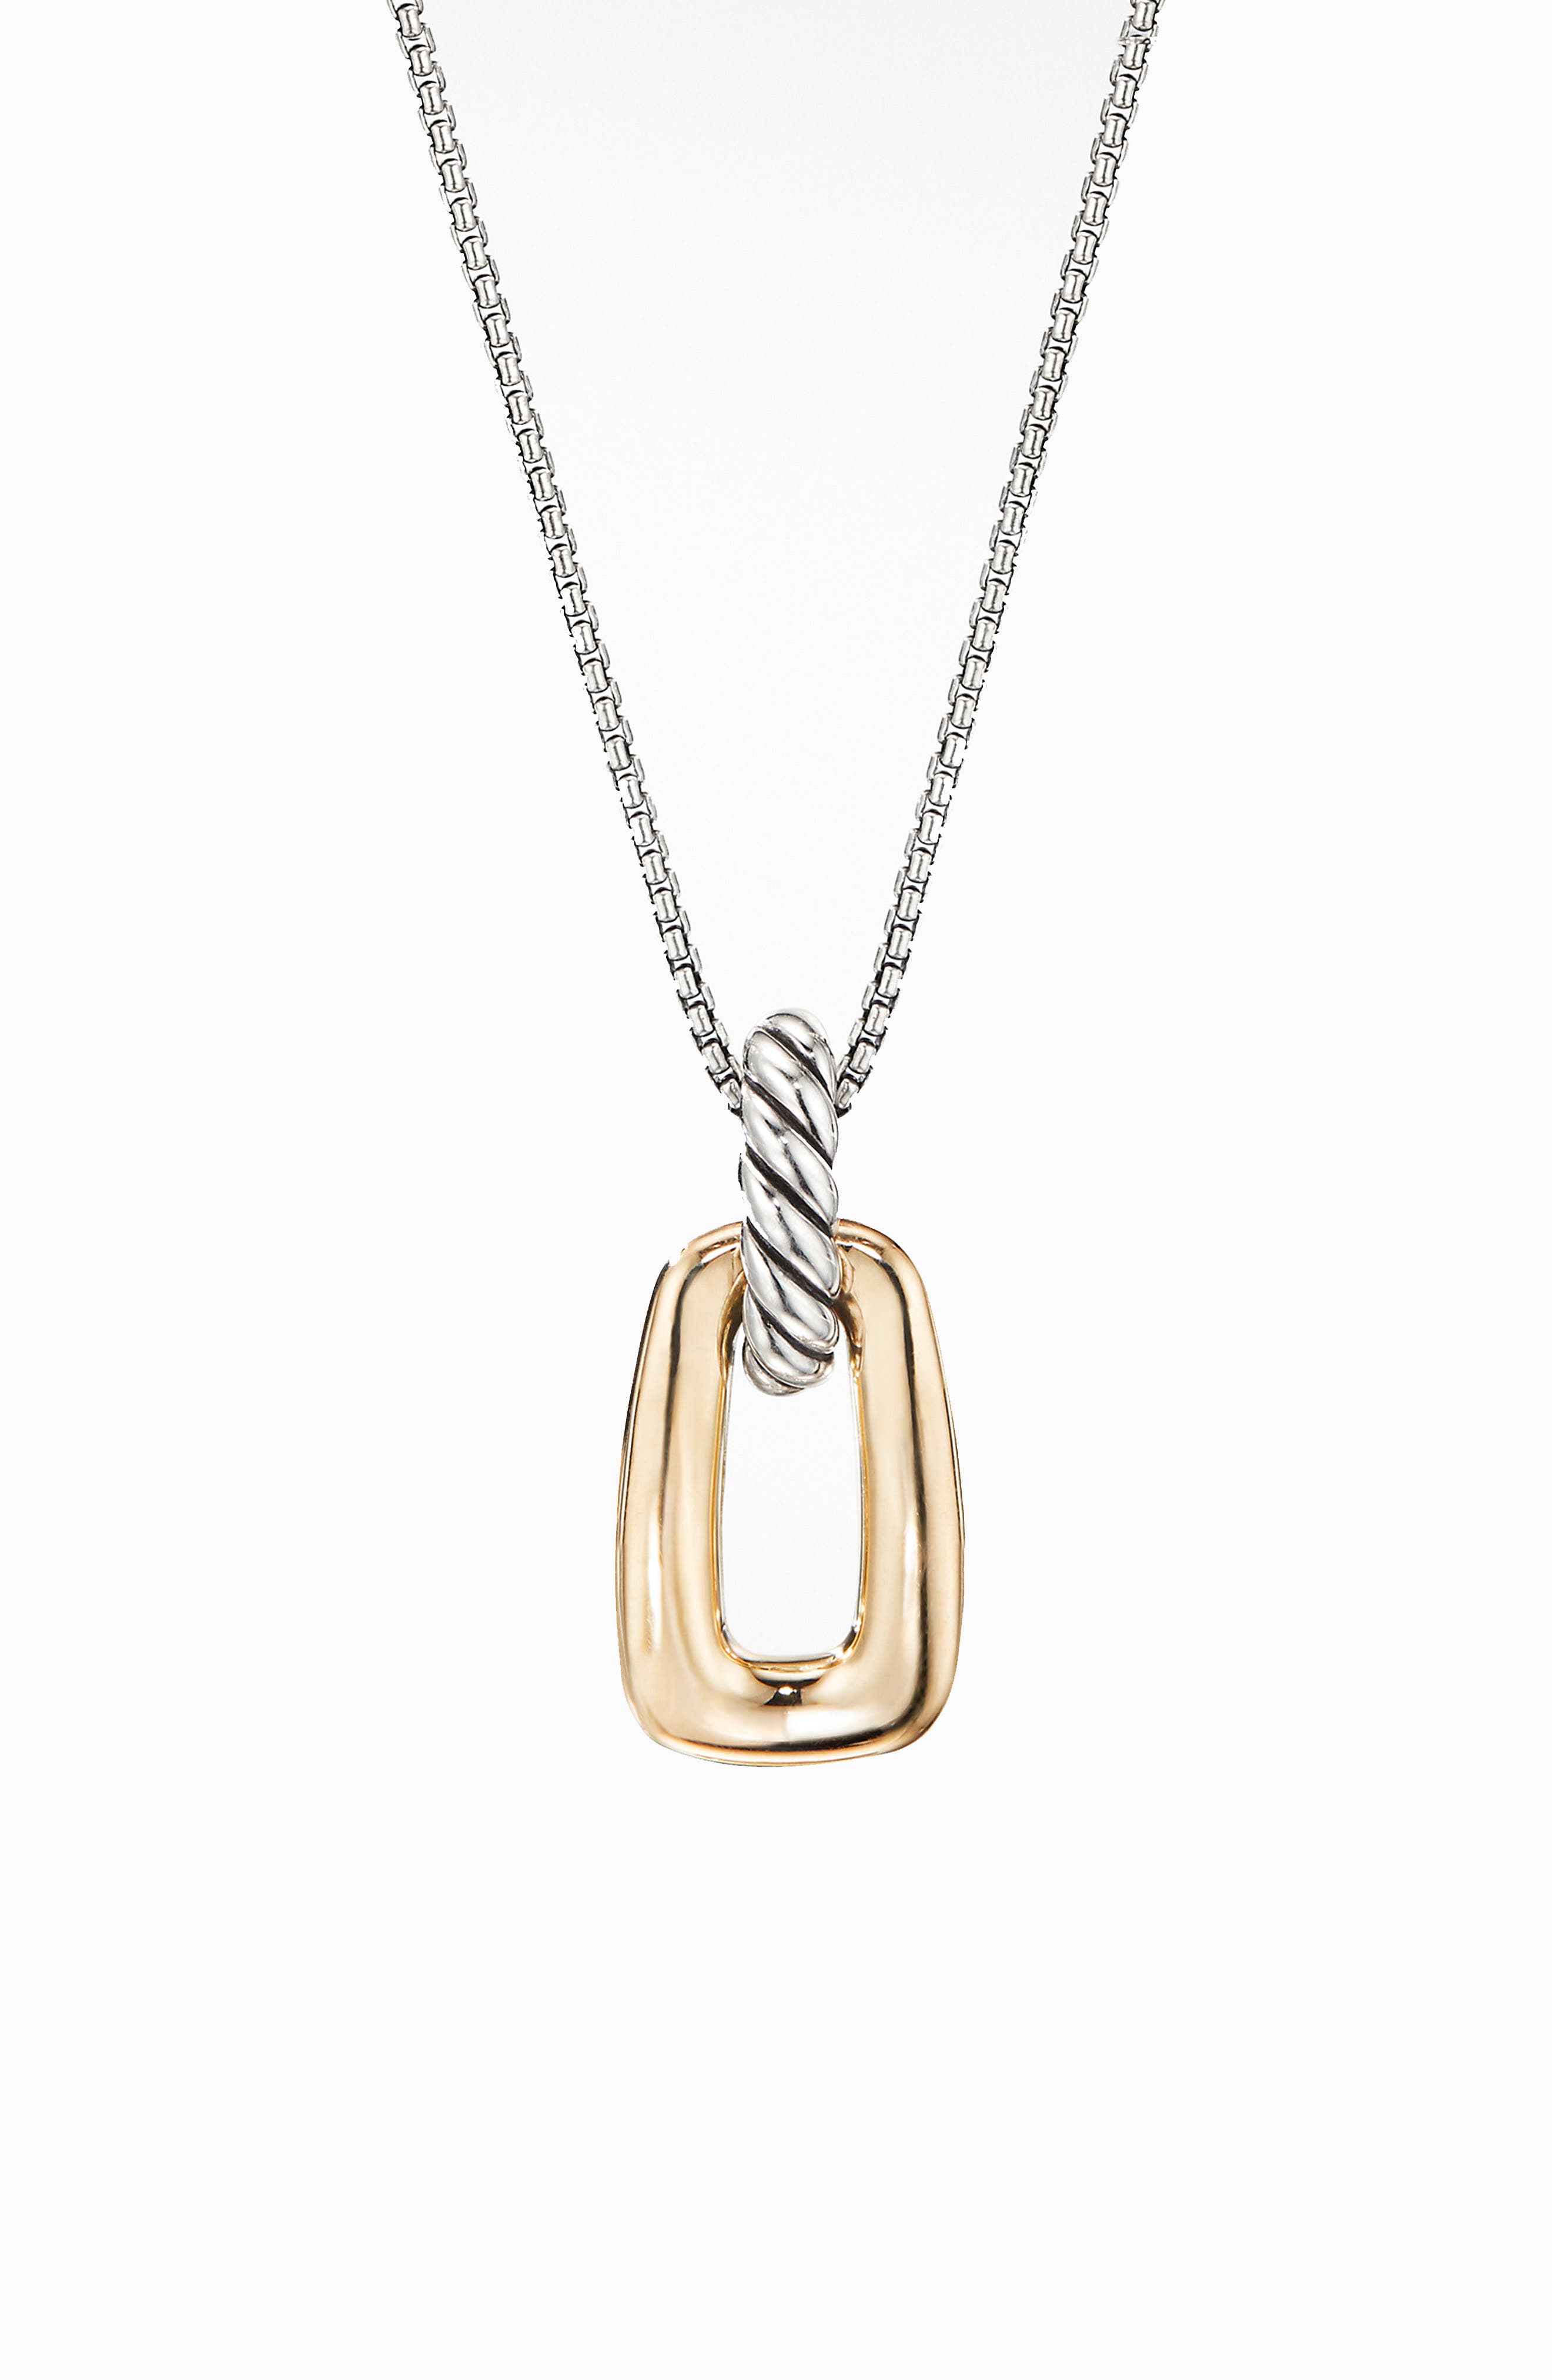 DAVID YURMAN Wellesley Link Pendant Necklace with 18K Gold, Main, color, 18K YELLOW GOLD/ SILVER